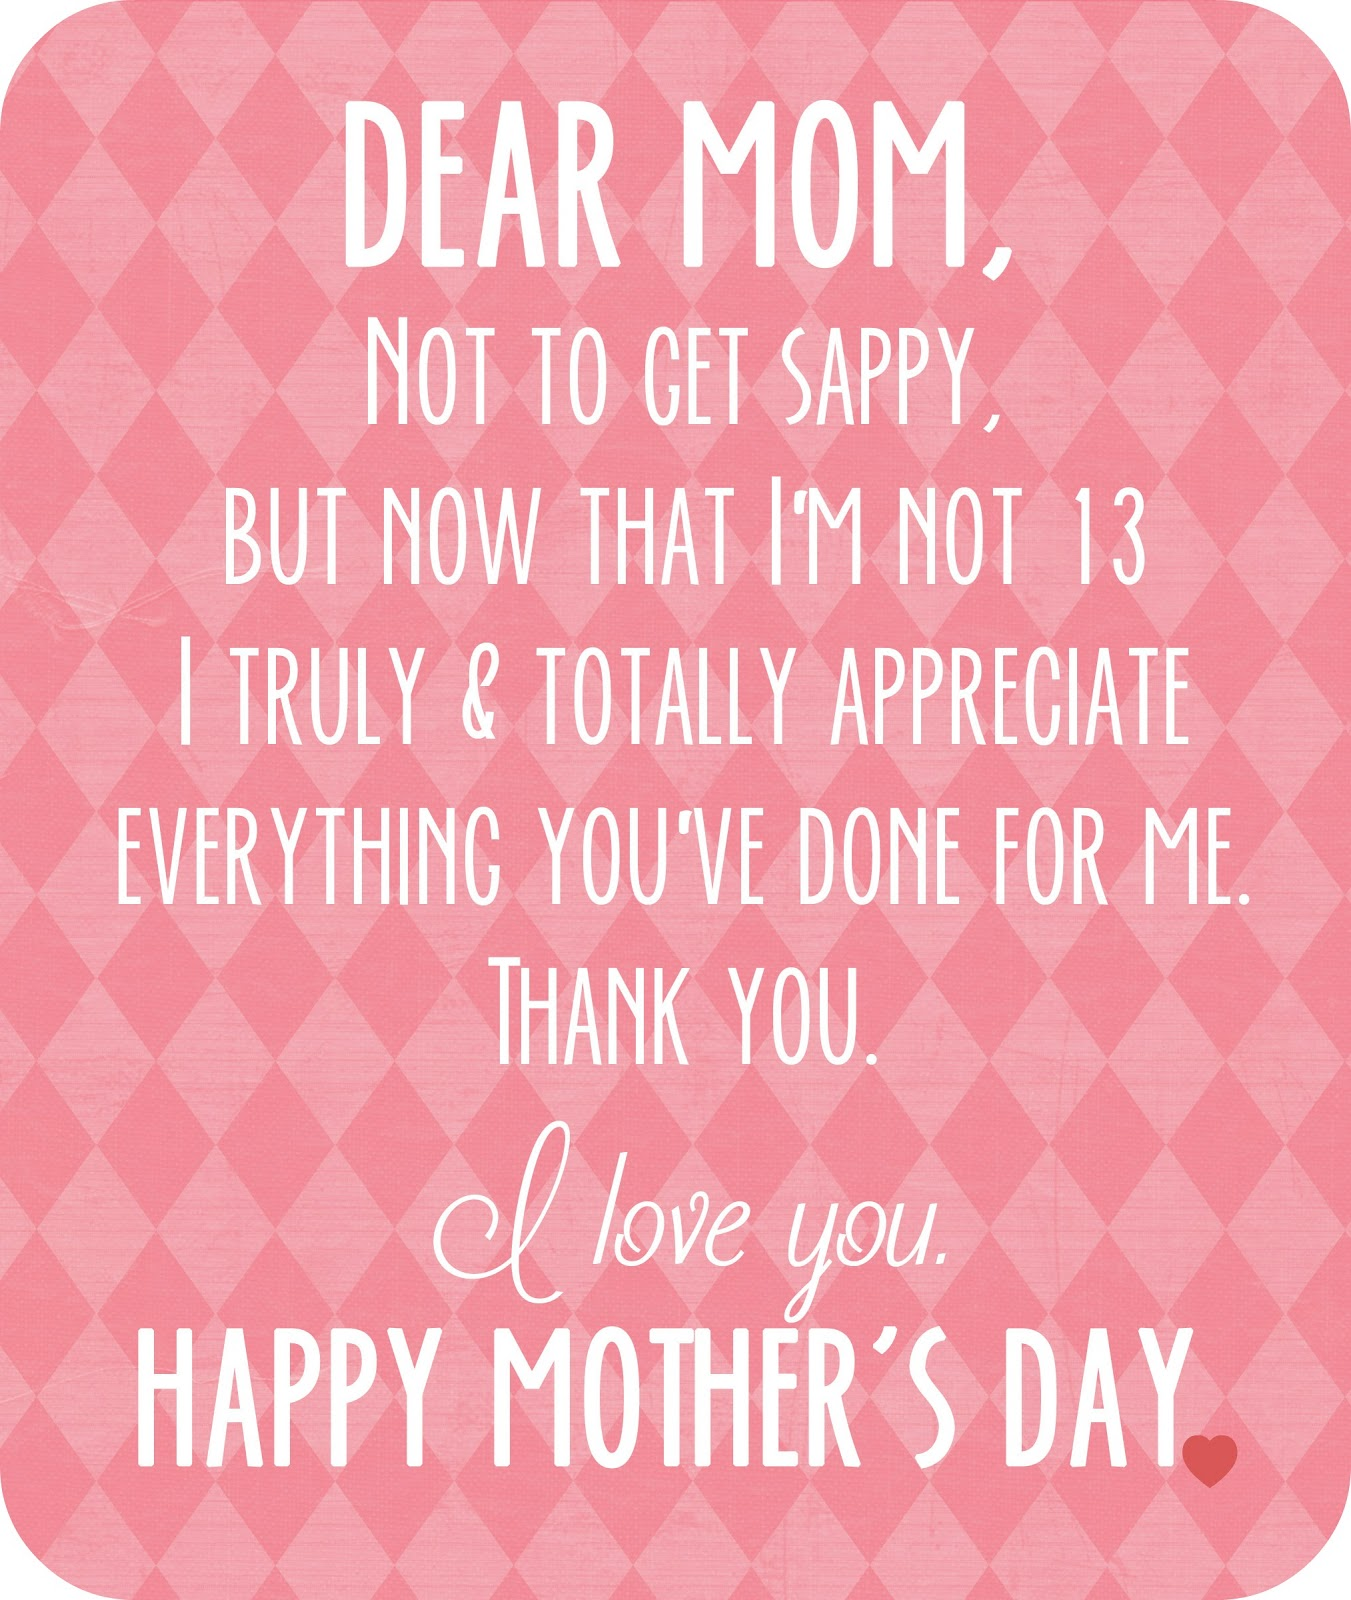 I Love You Quotes Daughter To Mother : crazyloucreations.blog...crazylou: Happy Mothers Day! {Free Printable